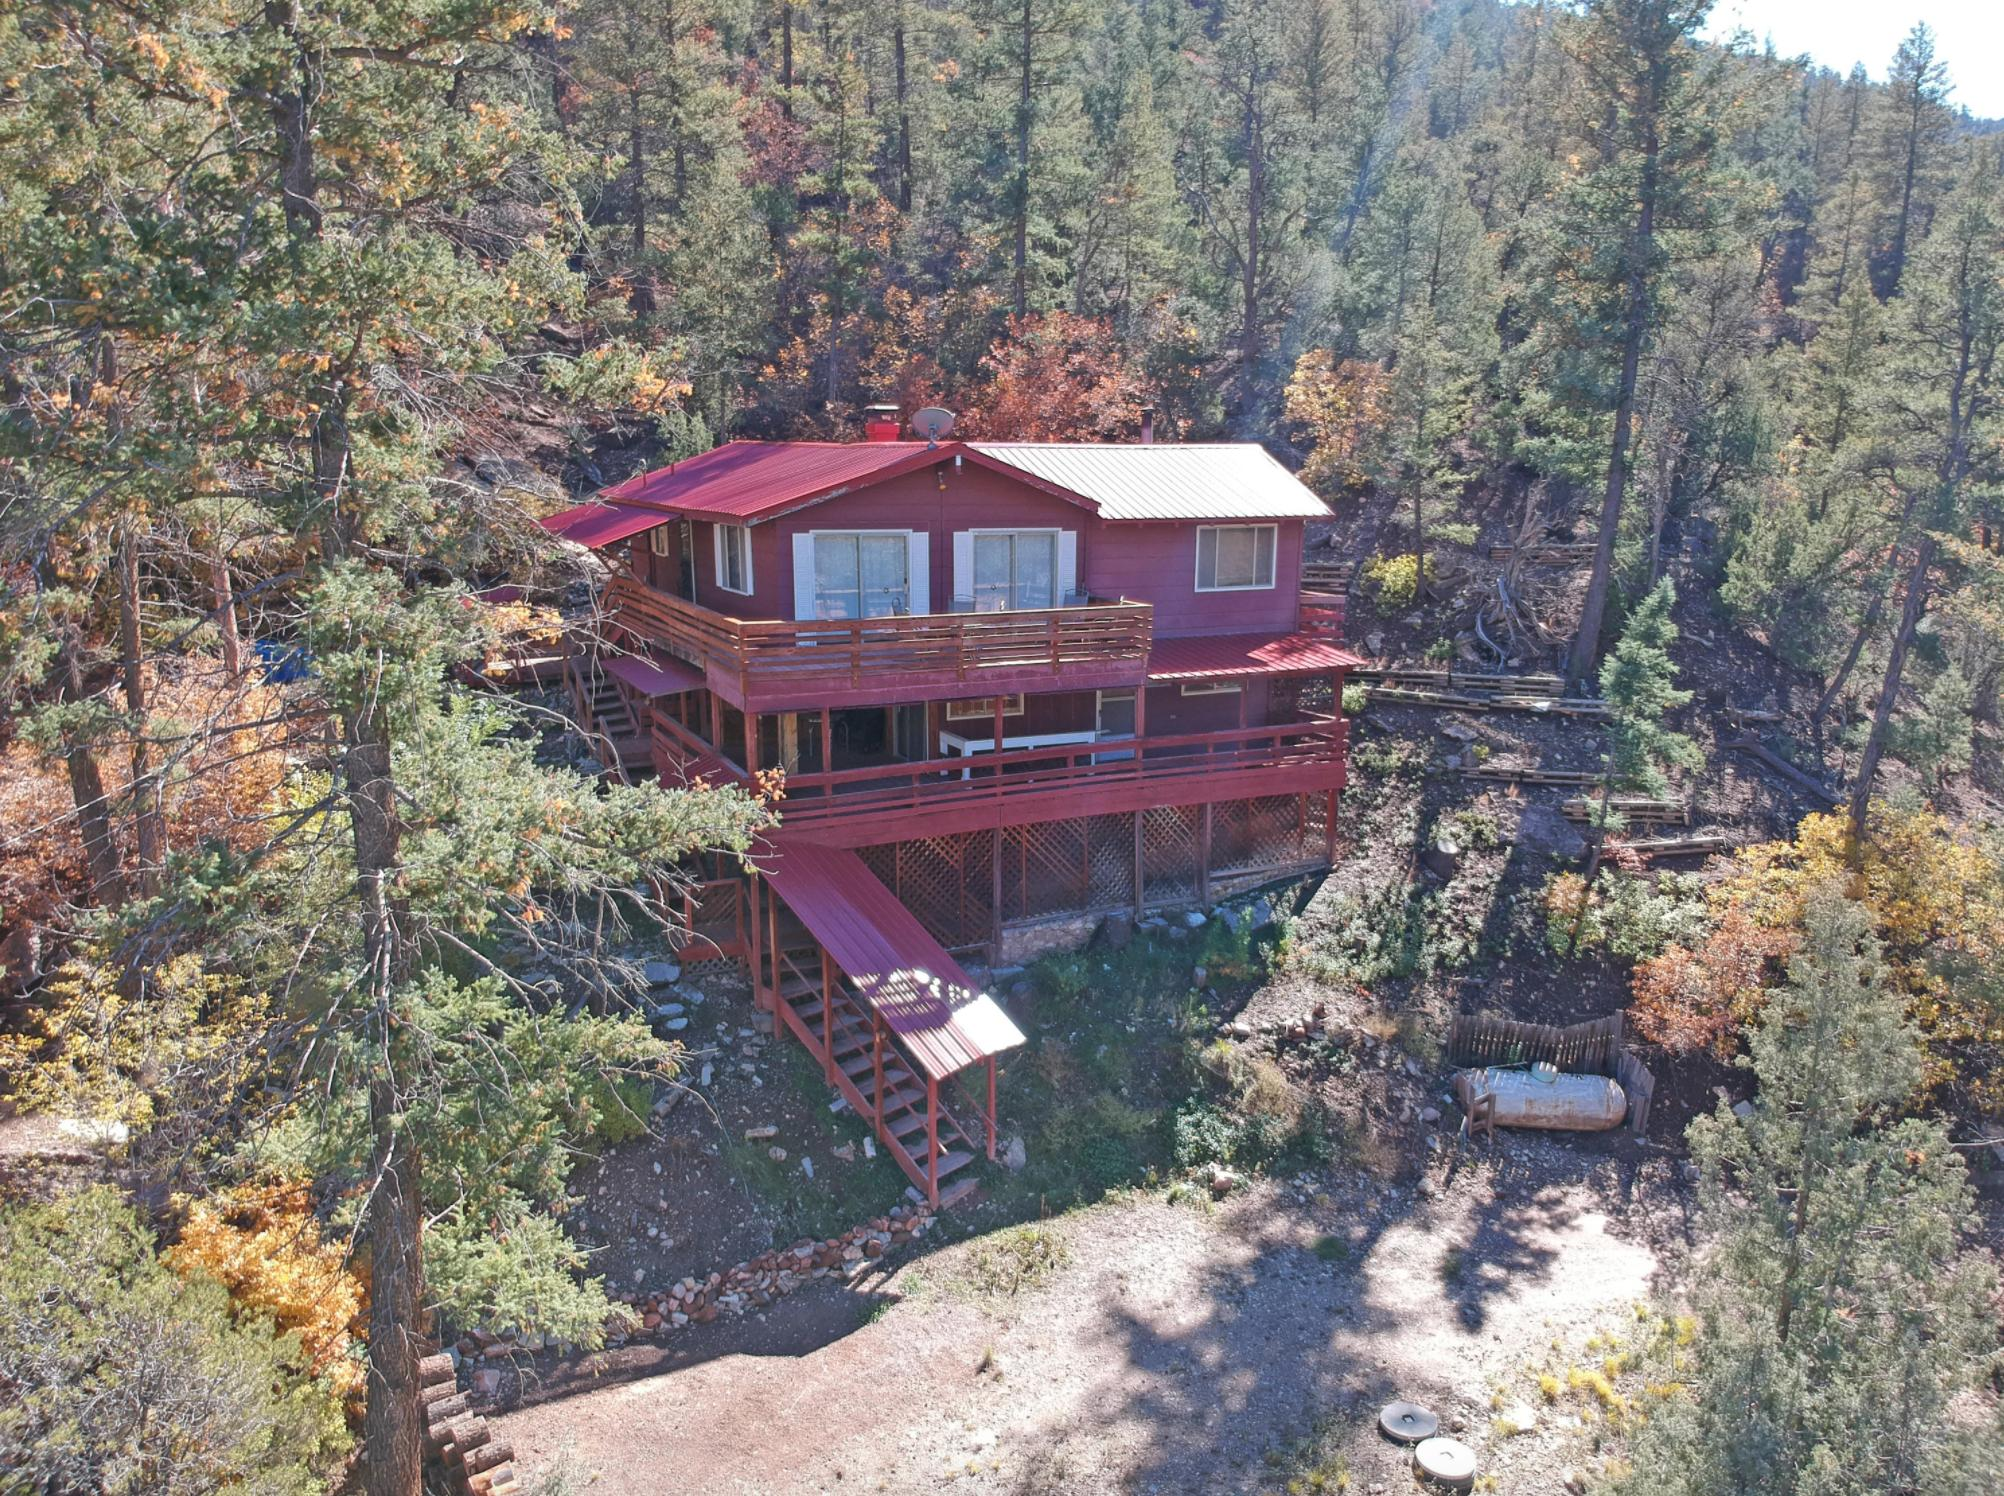 BACK ON MARKET - Relax in your very own 3 acre mountain oasis in the Jemez Valley! Conveniently located near all of the amazing outdoor opportunities Jemez is known for, and only a few minutes to the comforts of the village of Jemez Springs. Drink your morning coffee on either one of the two wraparound decks, surrounded by Ponderosa Pines and western mountain views. Meander down to the Jemez River for even more tranquility. With three bedrooms (and a possible fourth) and an open living area that provides versatility, this place is amazing for weekend retreats, or to make a year-round home. Vaulted ceilings in the living room and dining room and abundant natural lighting provides the serenity you're searching for. You'll love this one, especially for the price!